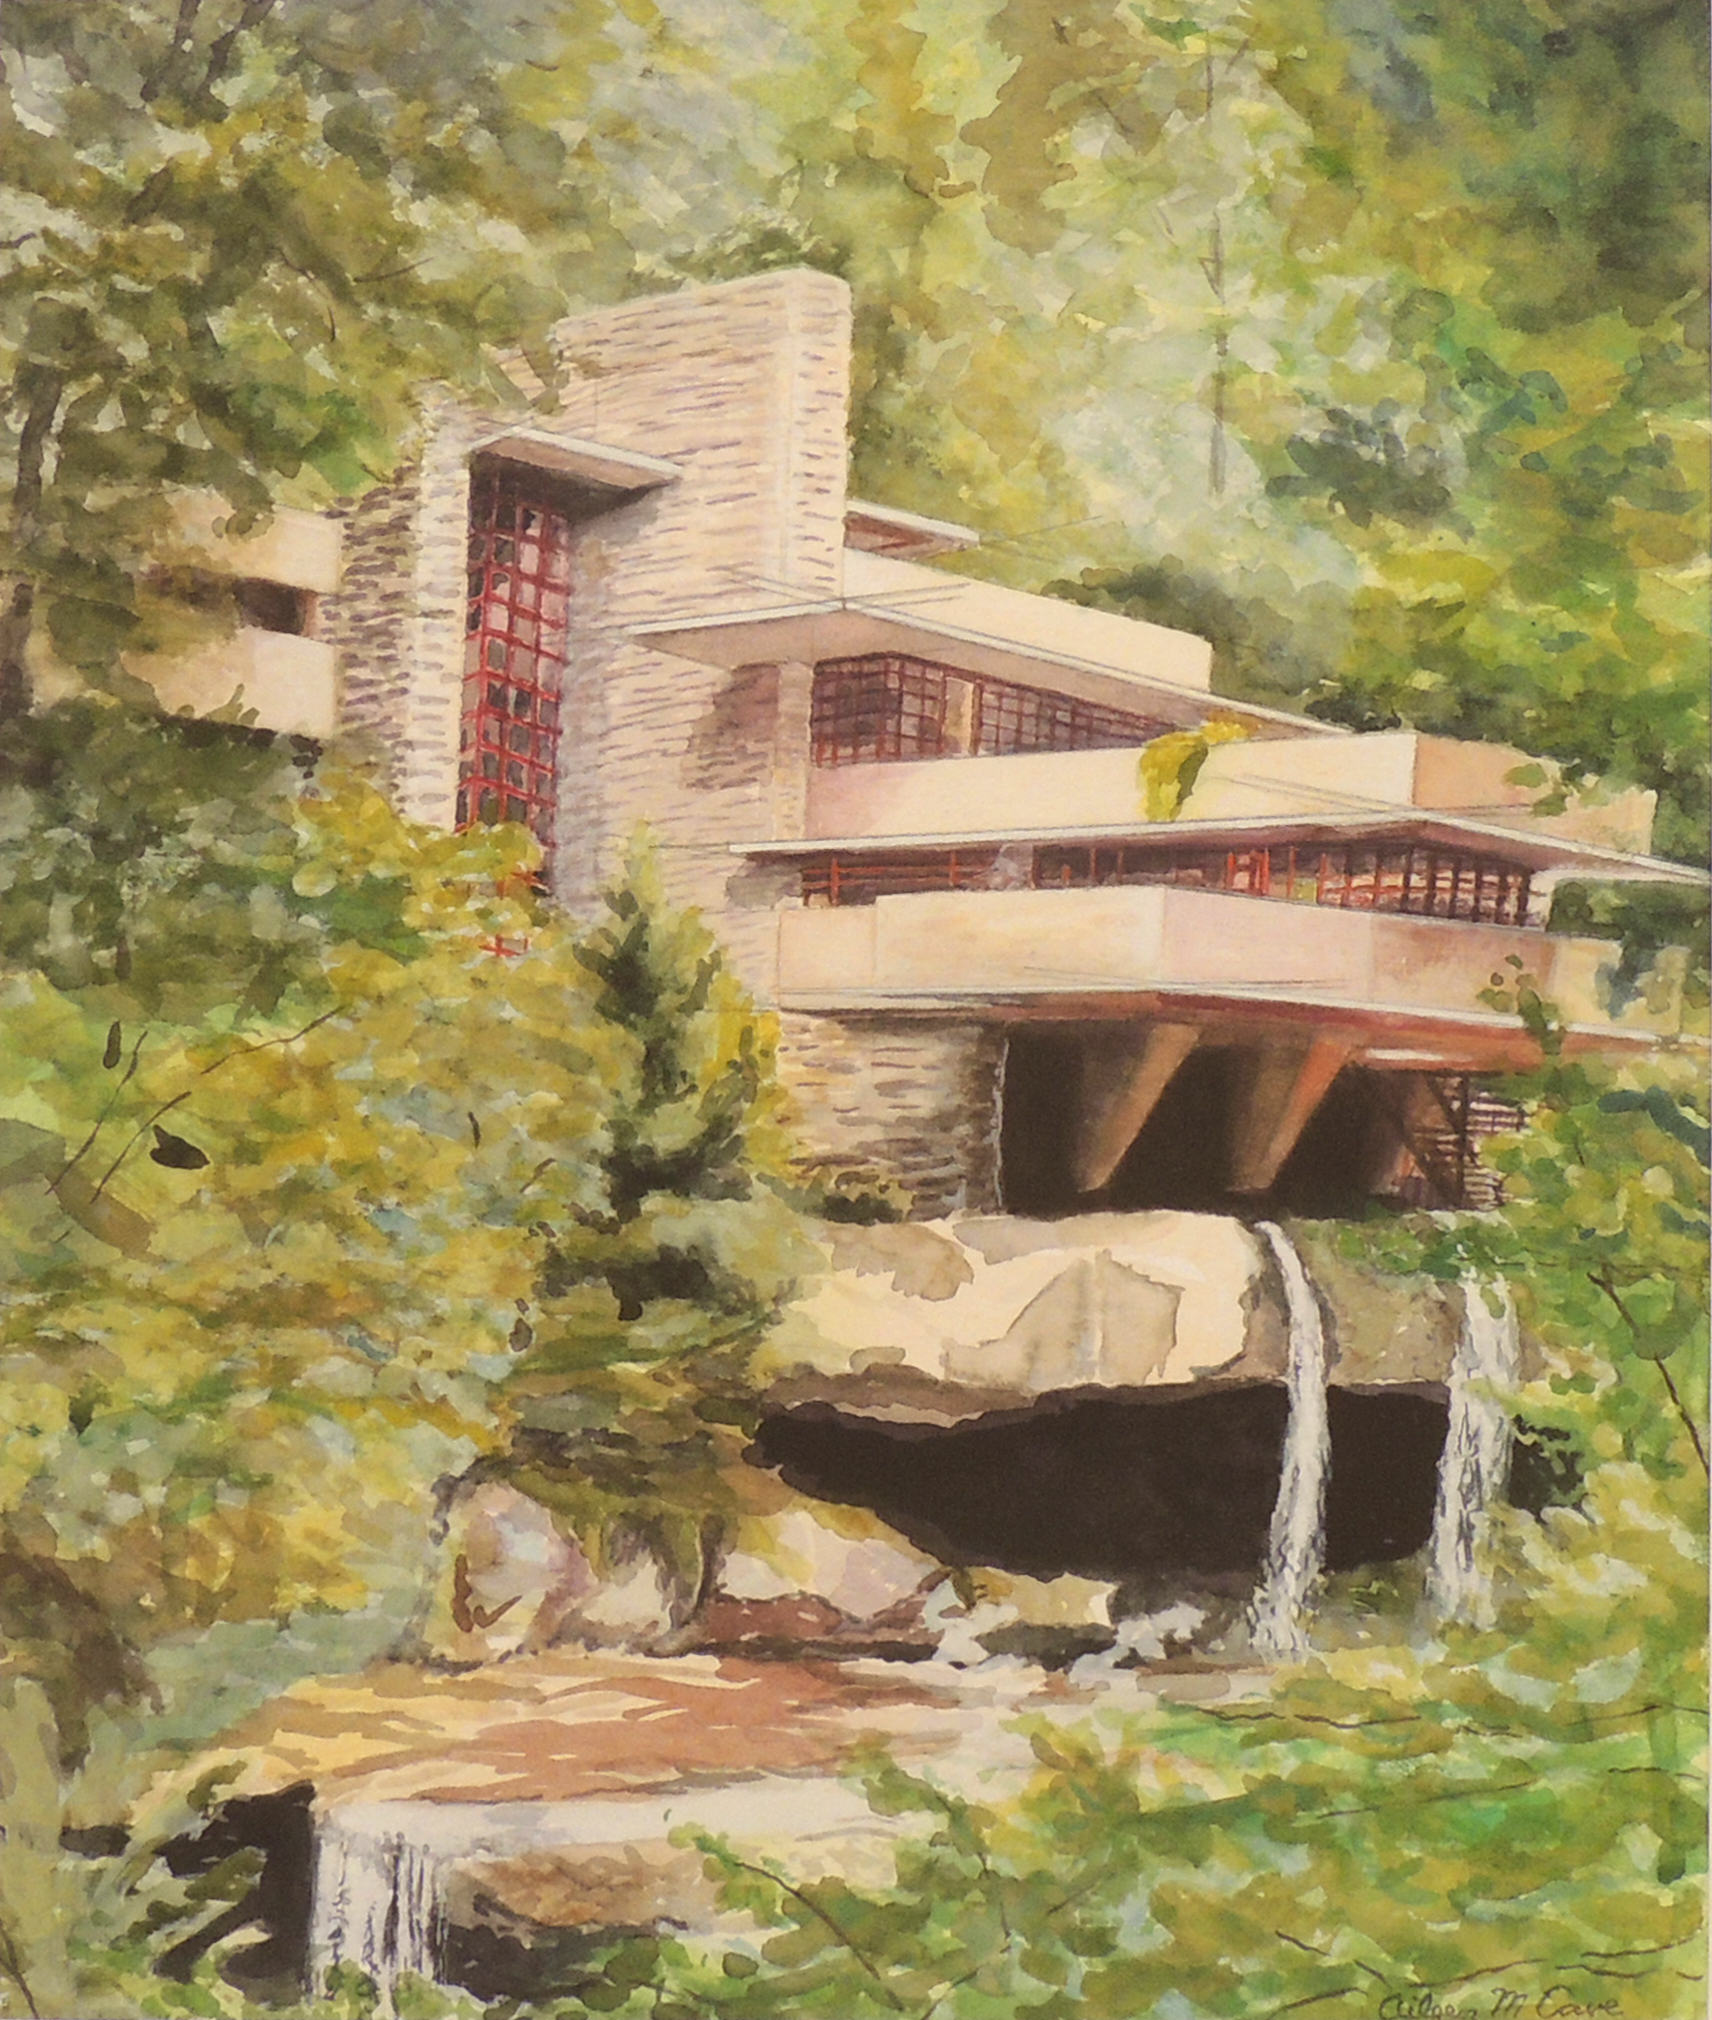 Aileen M. Cave | FALLINGWATER | Watercolor on Paper